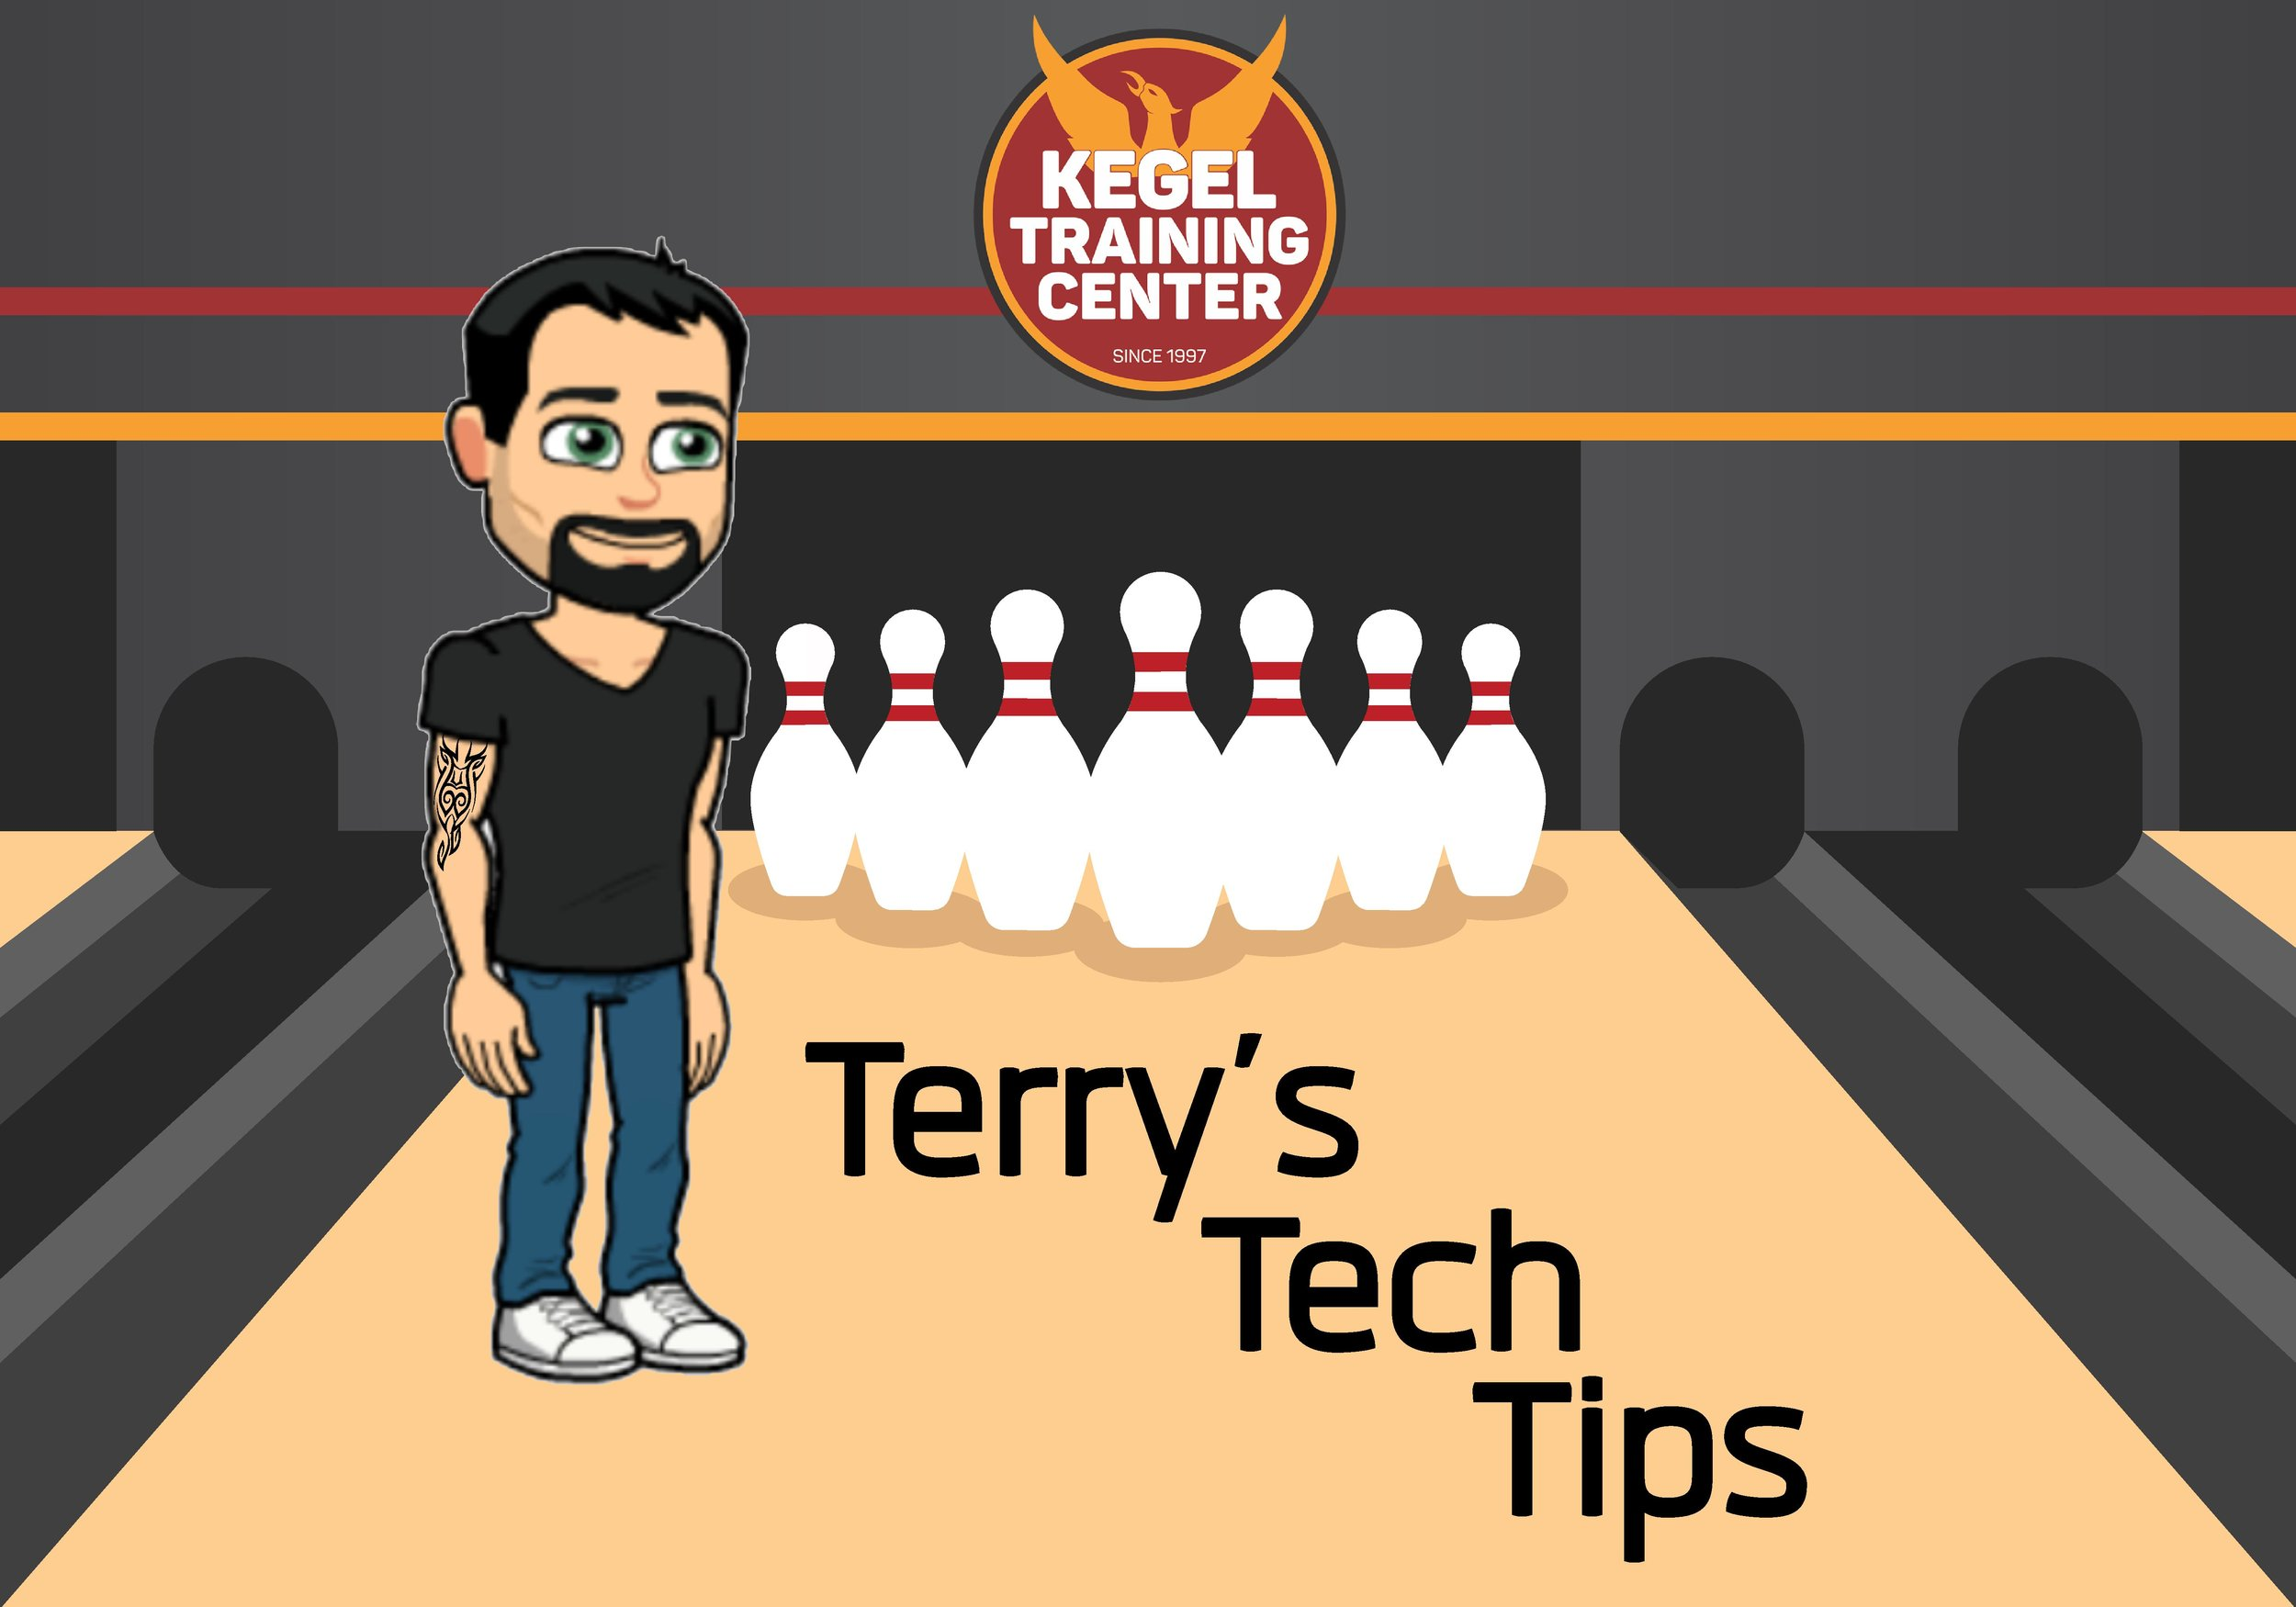 Terrys Tech Tips.jpg